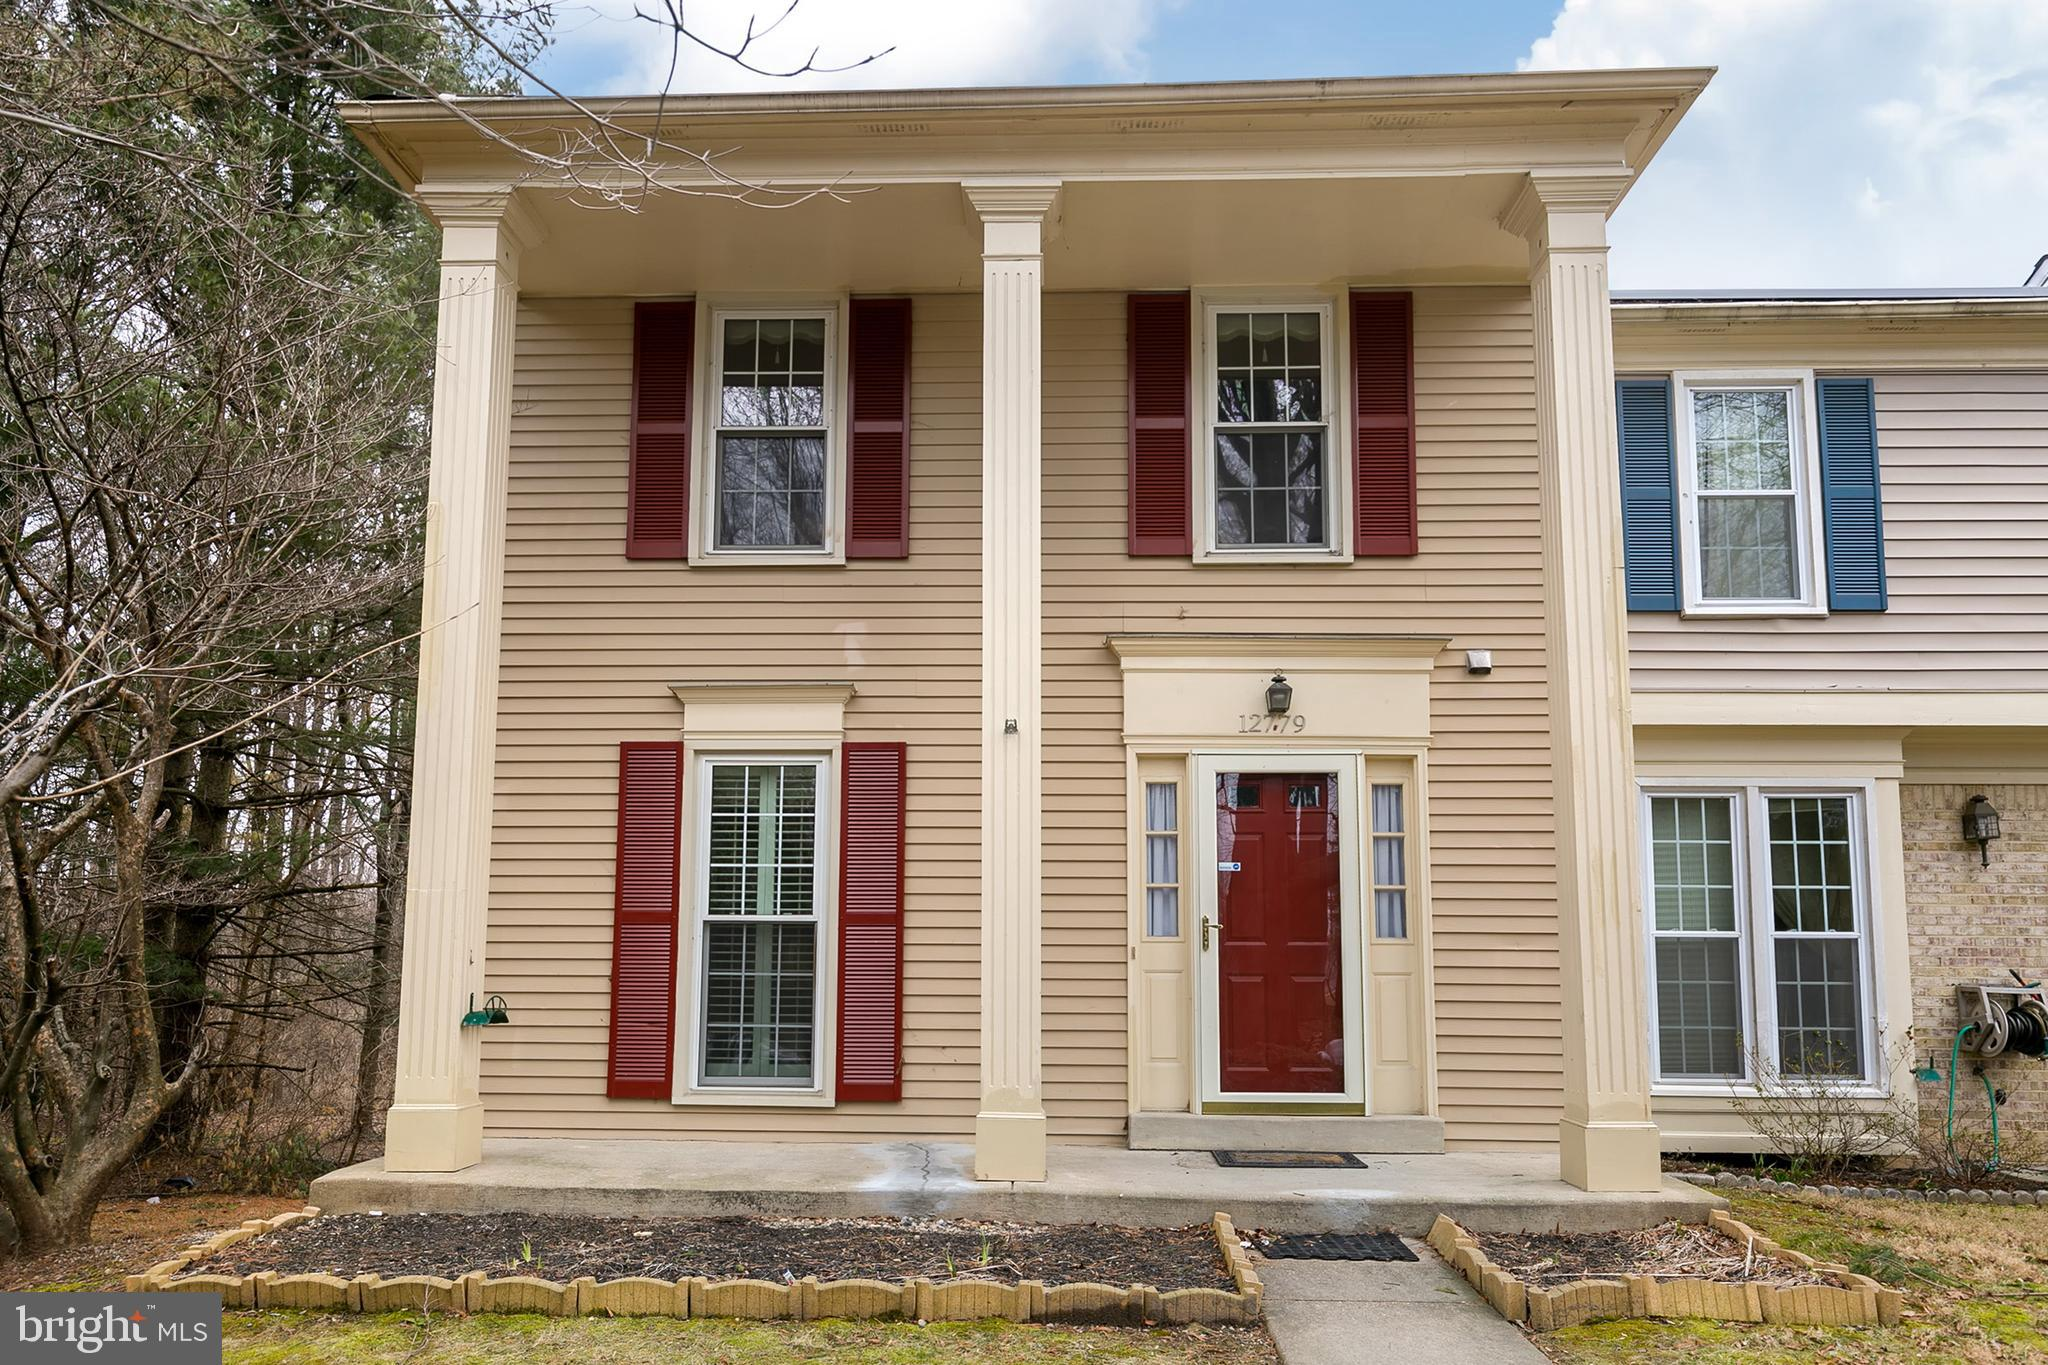 12779 TURQUOISE TERRACE, SILVER SPRING, MD 20904